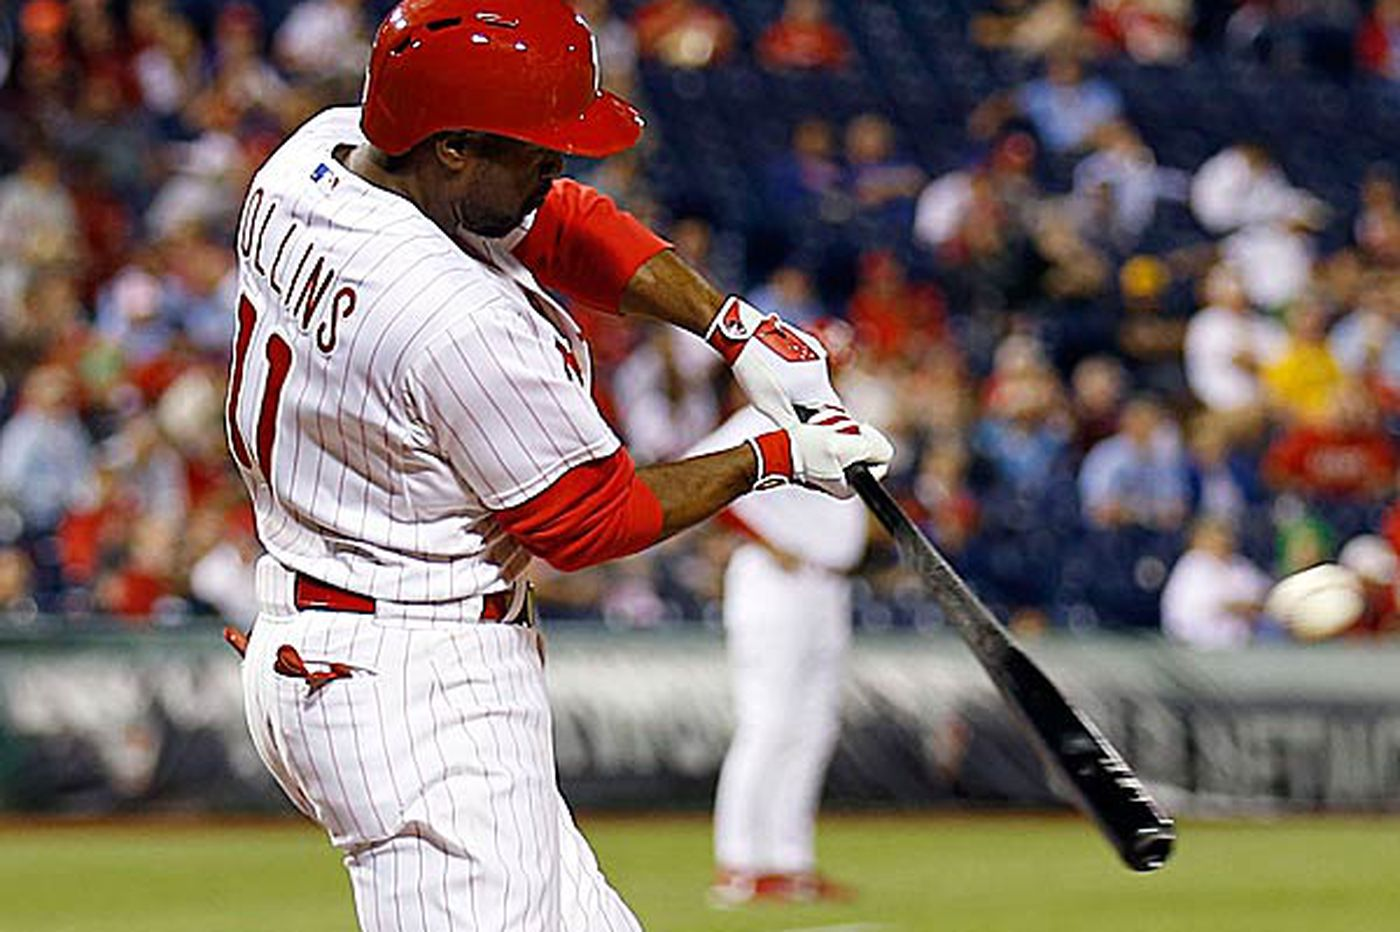 Phillies Notebook: Rollins hoping to make a mark in LA